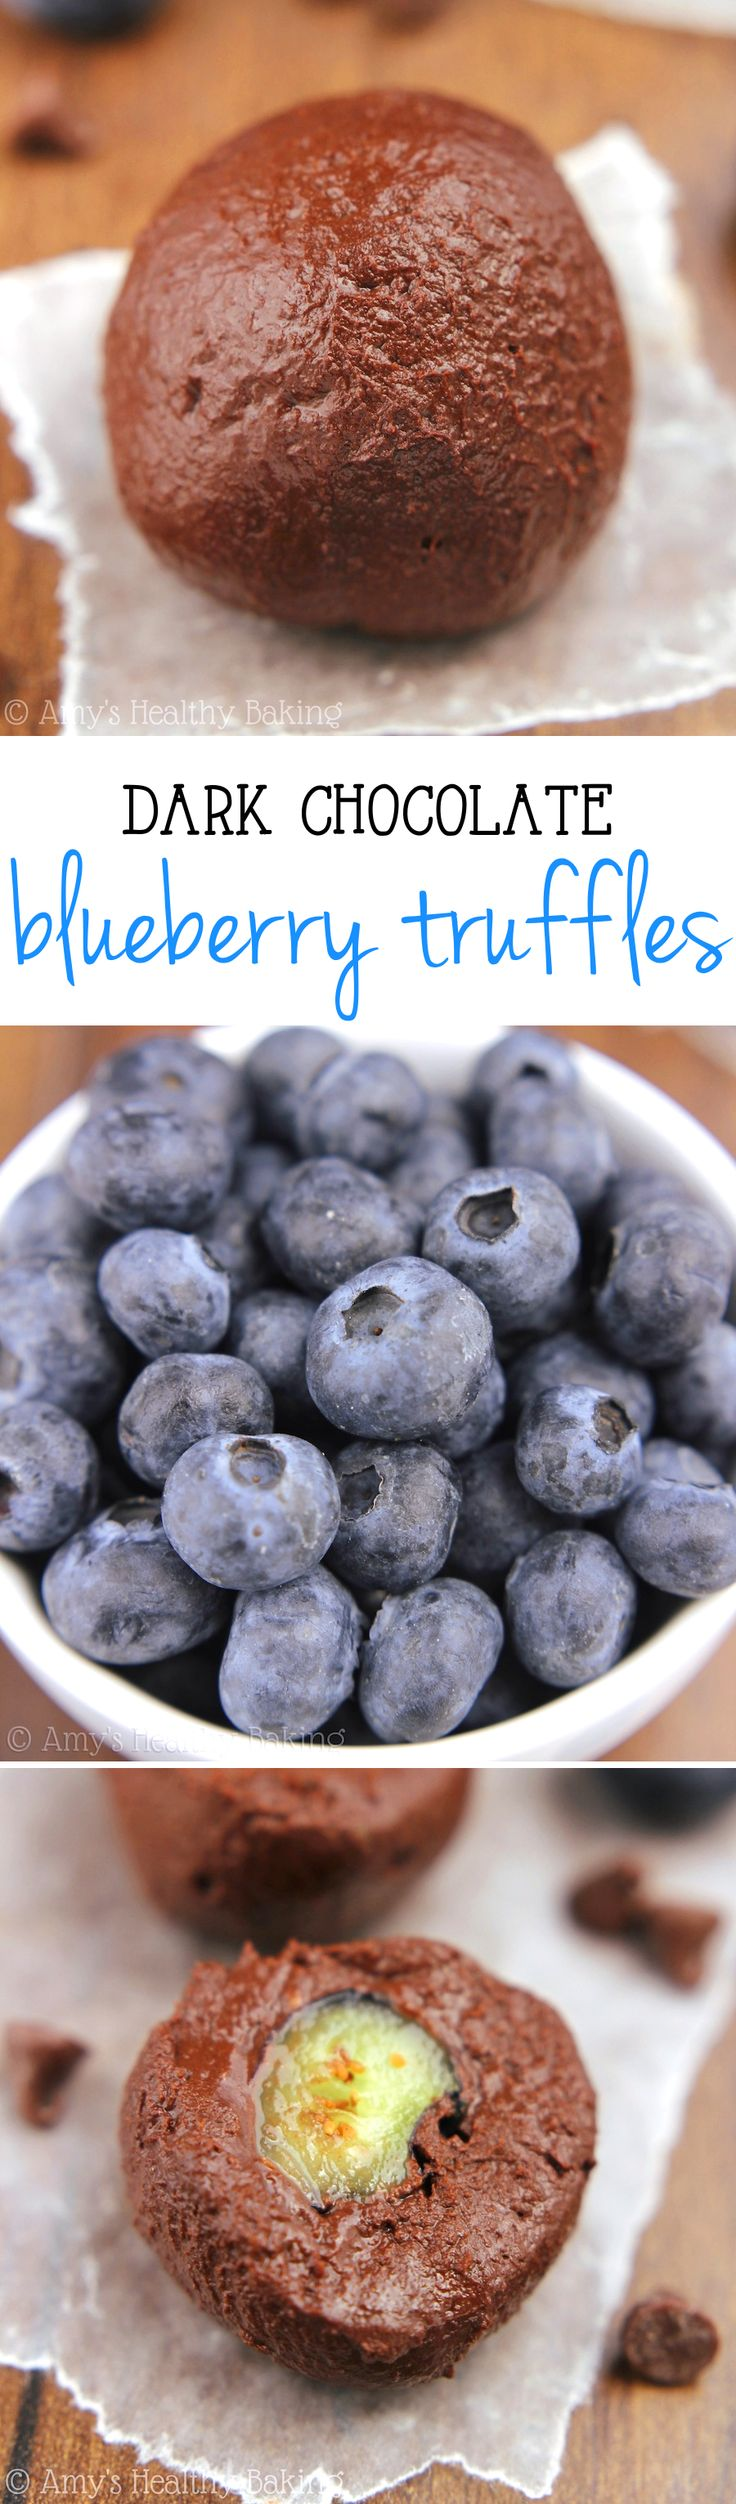 Dark Chocolate Blueberry Truffles -- SO rich & addictive! Just 5 healthy ingredients & 28 calories!